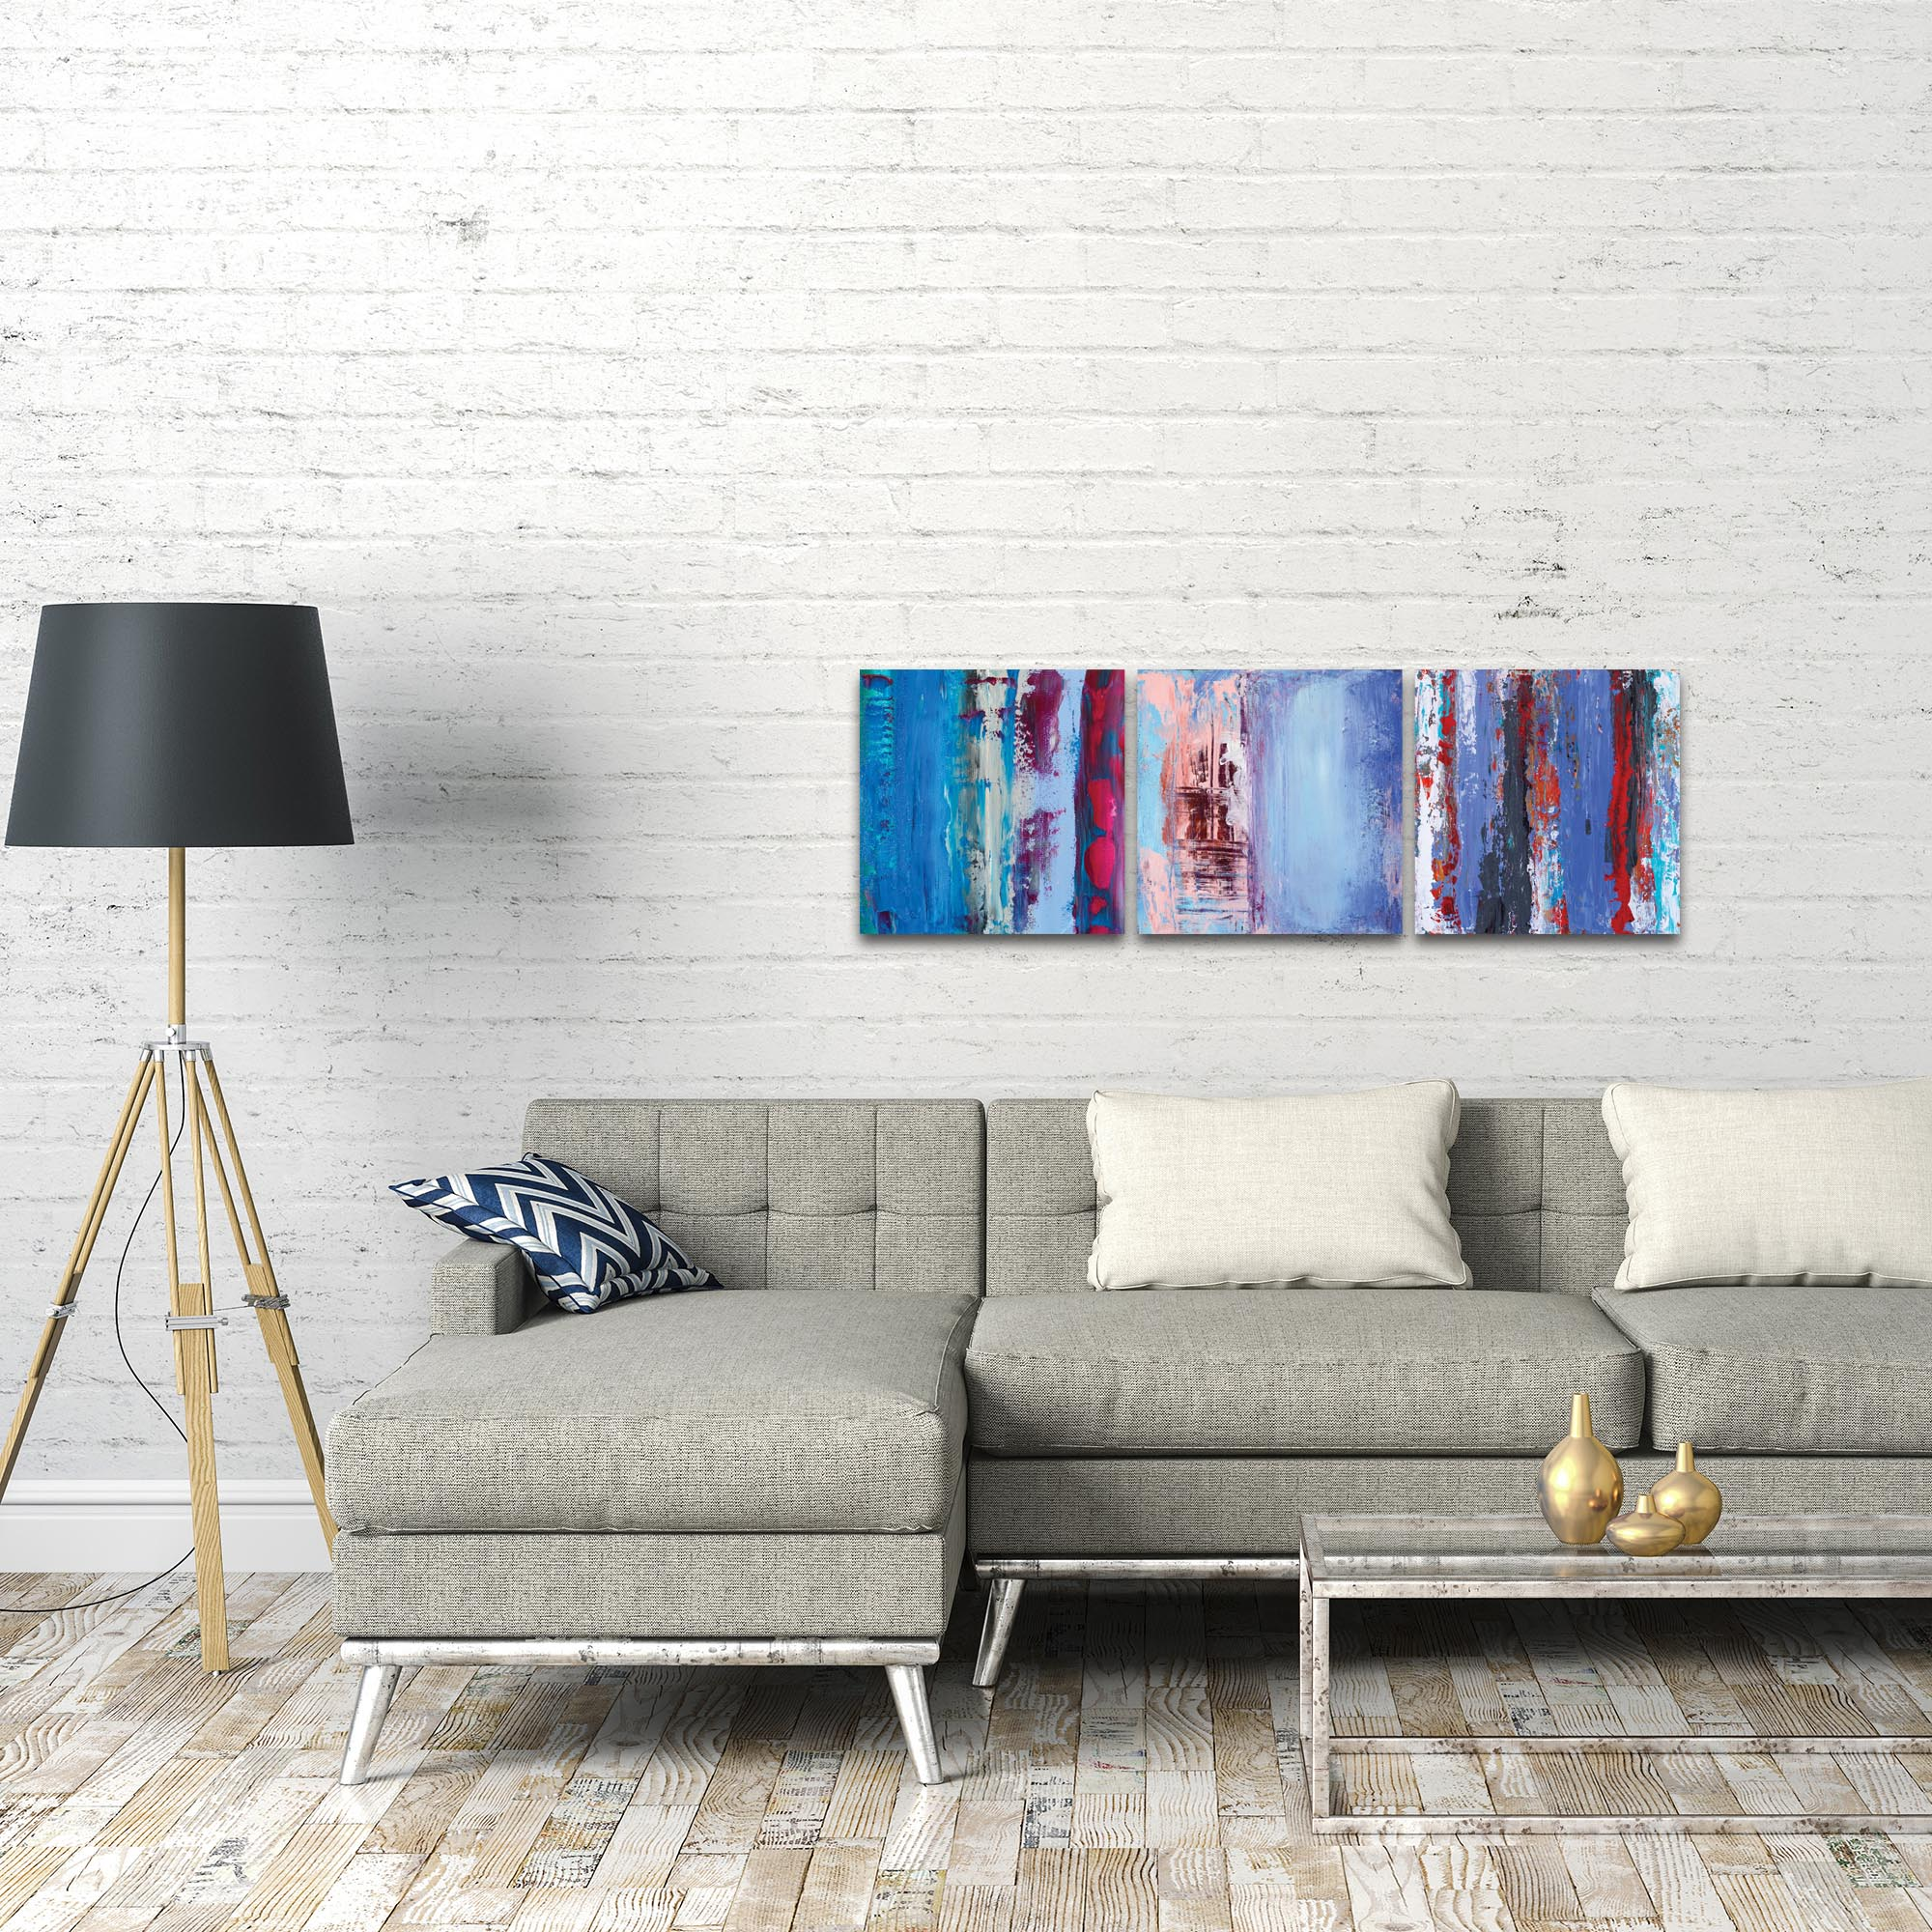 Abstract Wall Art 'Urban Triptych 1' - Urban Decor on Metal or Plexiglass - Lifestyle View